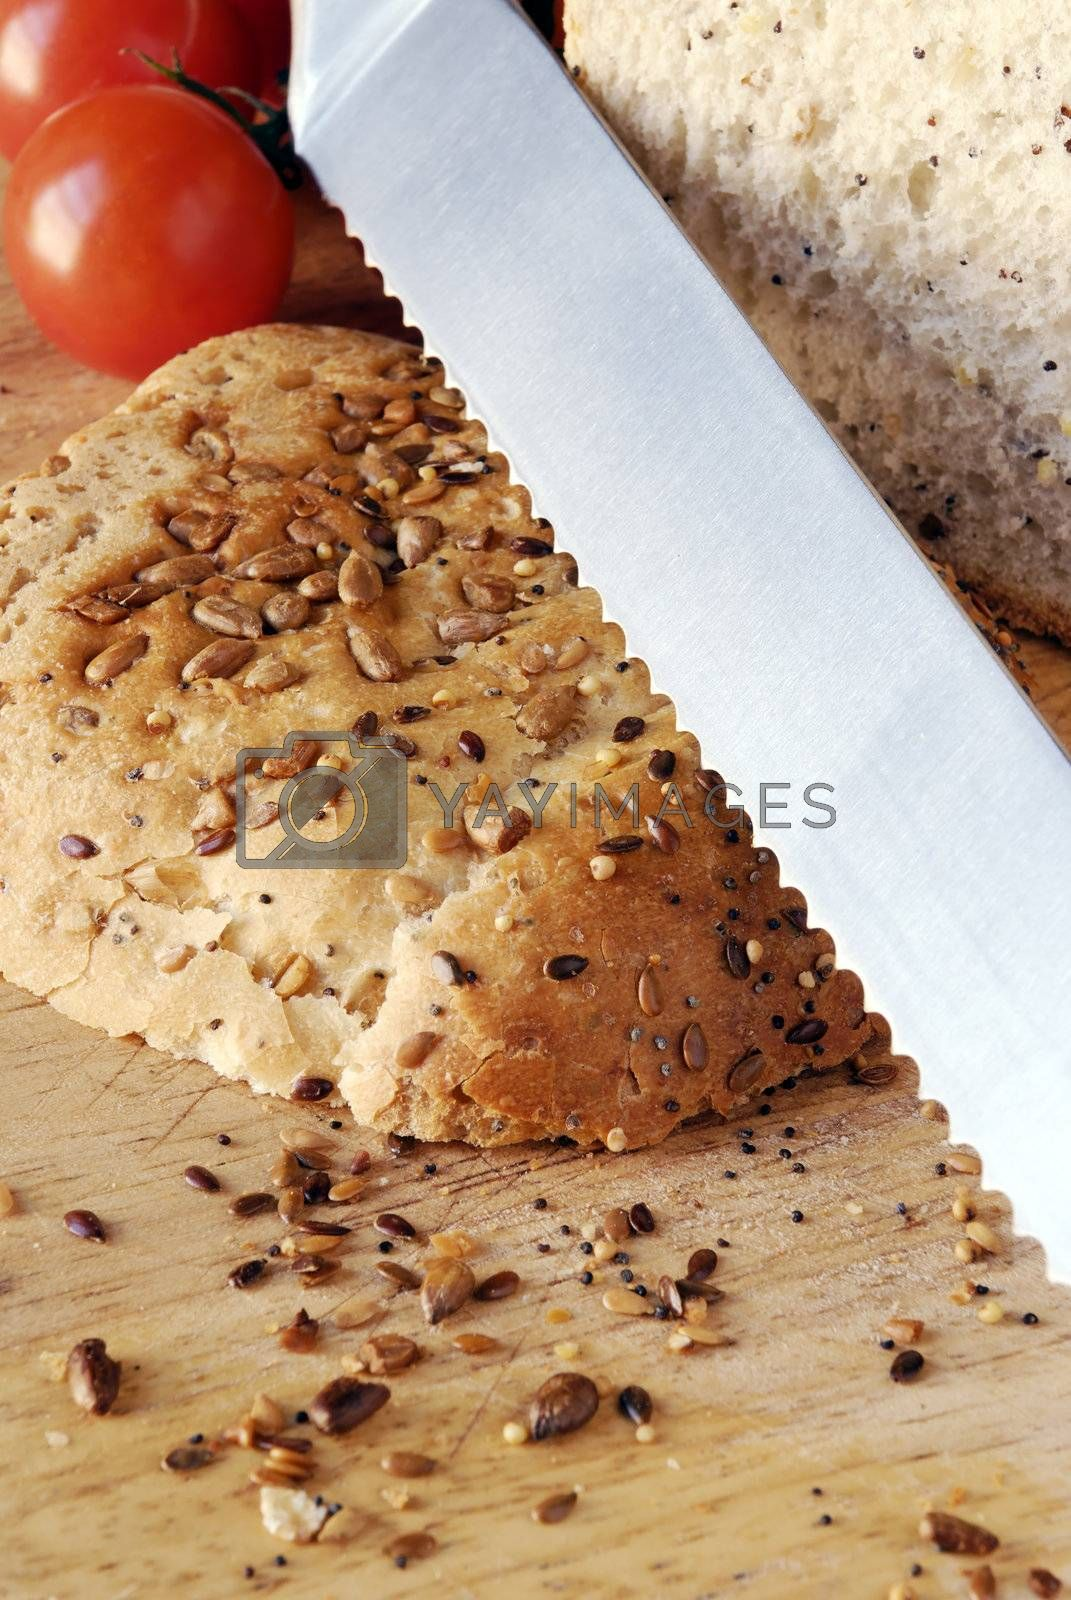 seeded bread on wooden board by massman